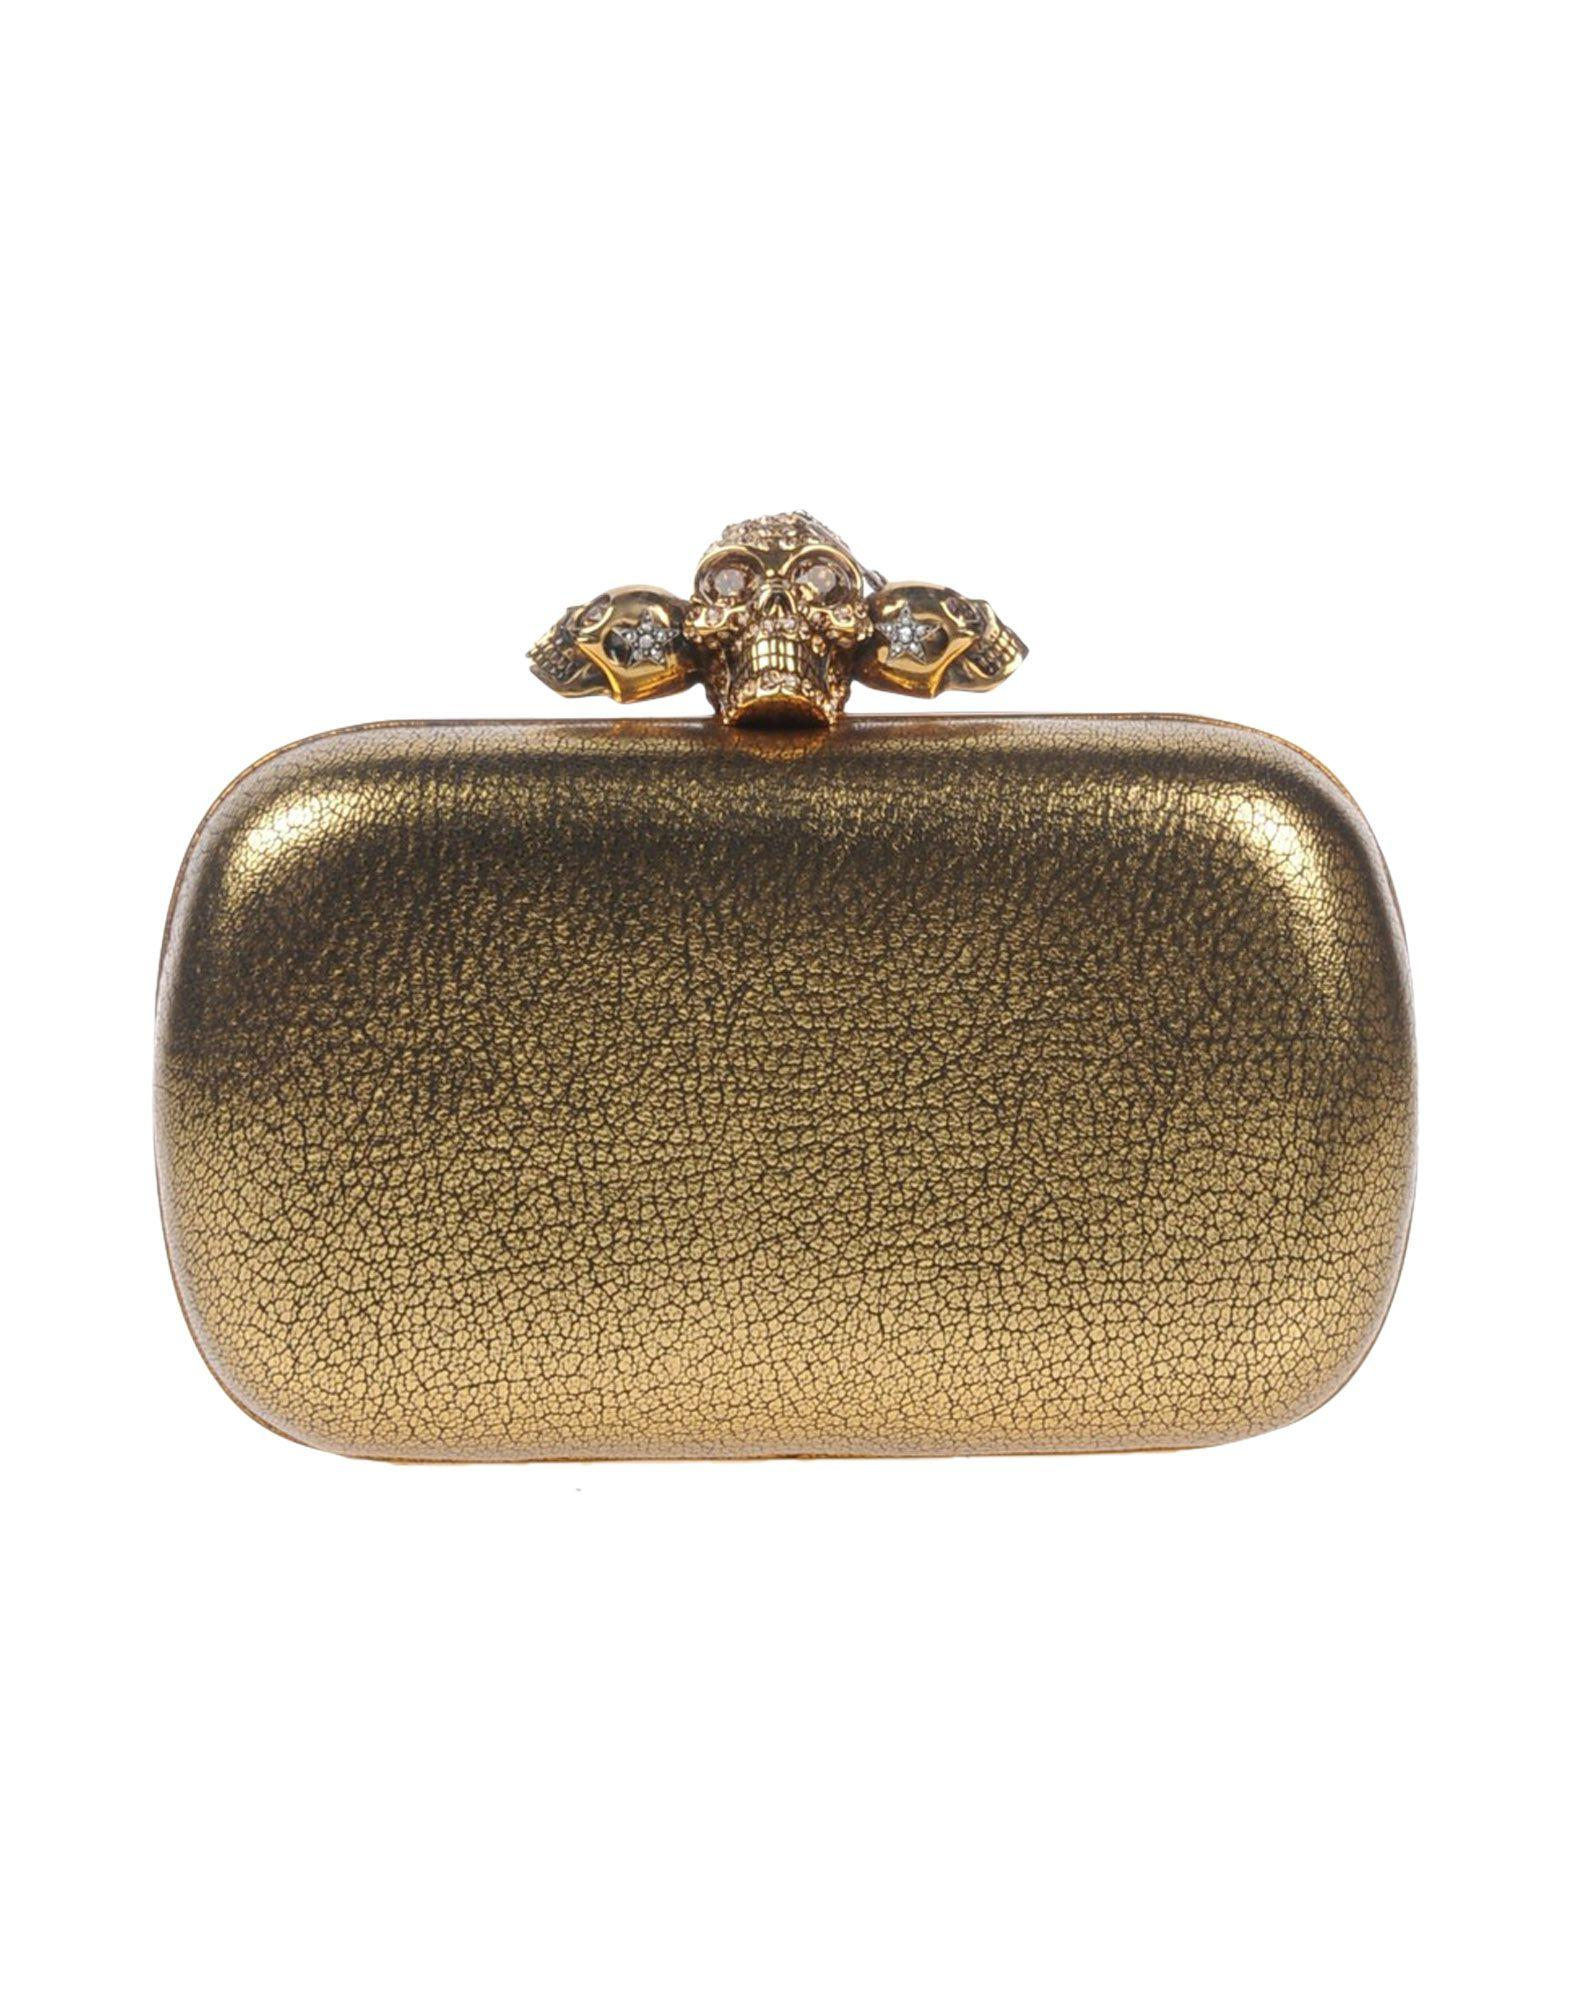 Alexander Mcqueen Handbags In Gold